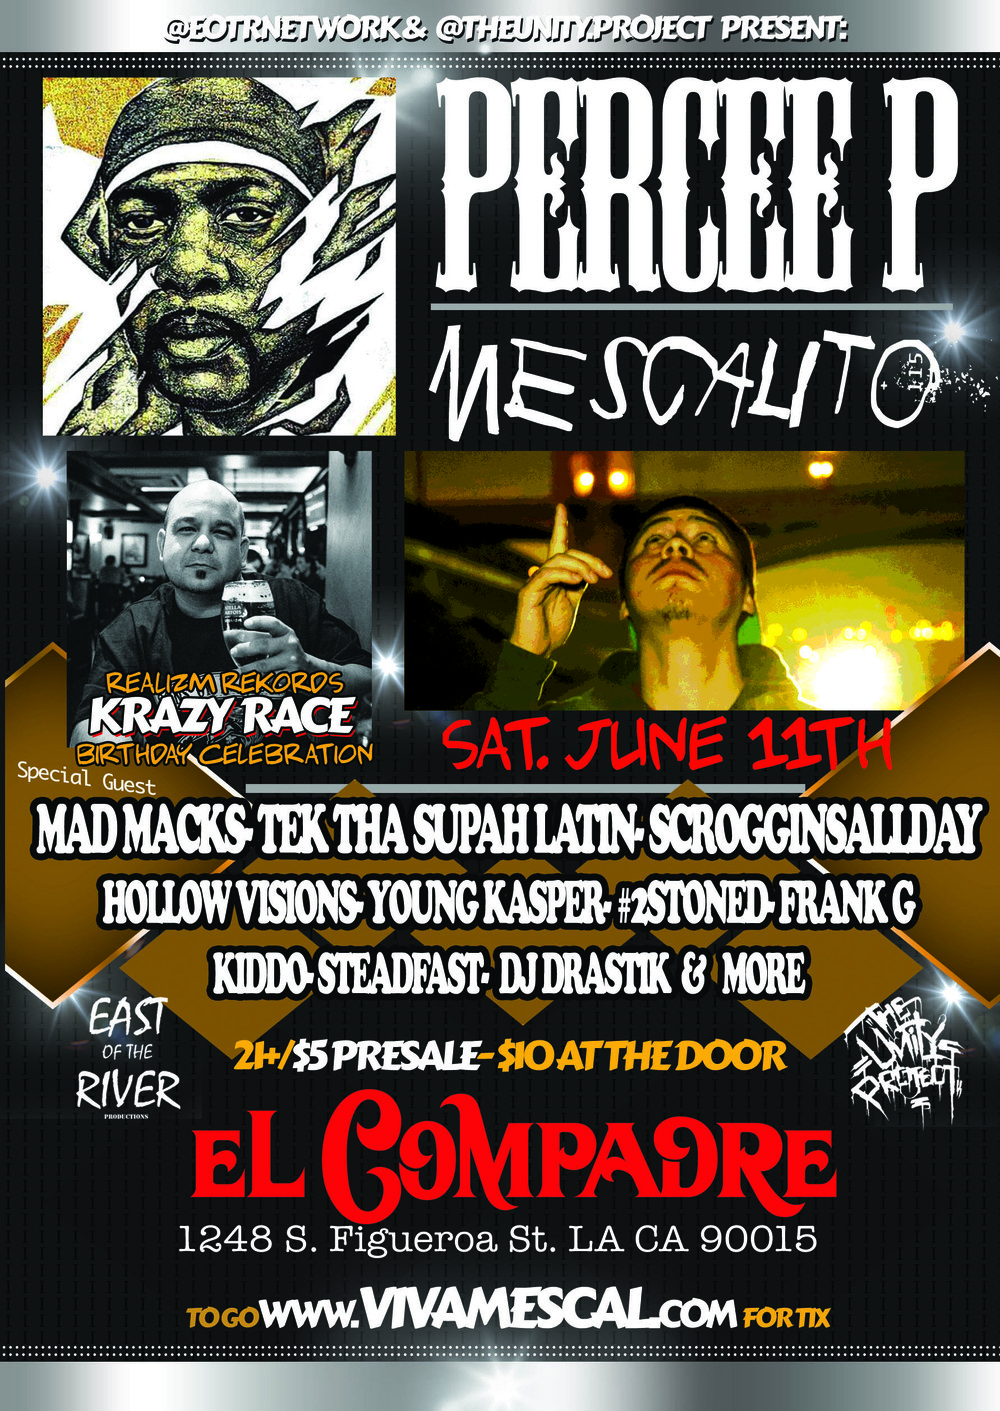 The Live Side Presented by The EOTRNetwork and The Unity Project featuring Percee P and Mescalito Live @ El Compadre: 1248 S. Figueroa ST LA CA 90015  Tickets on Sale Now